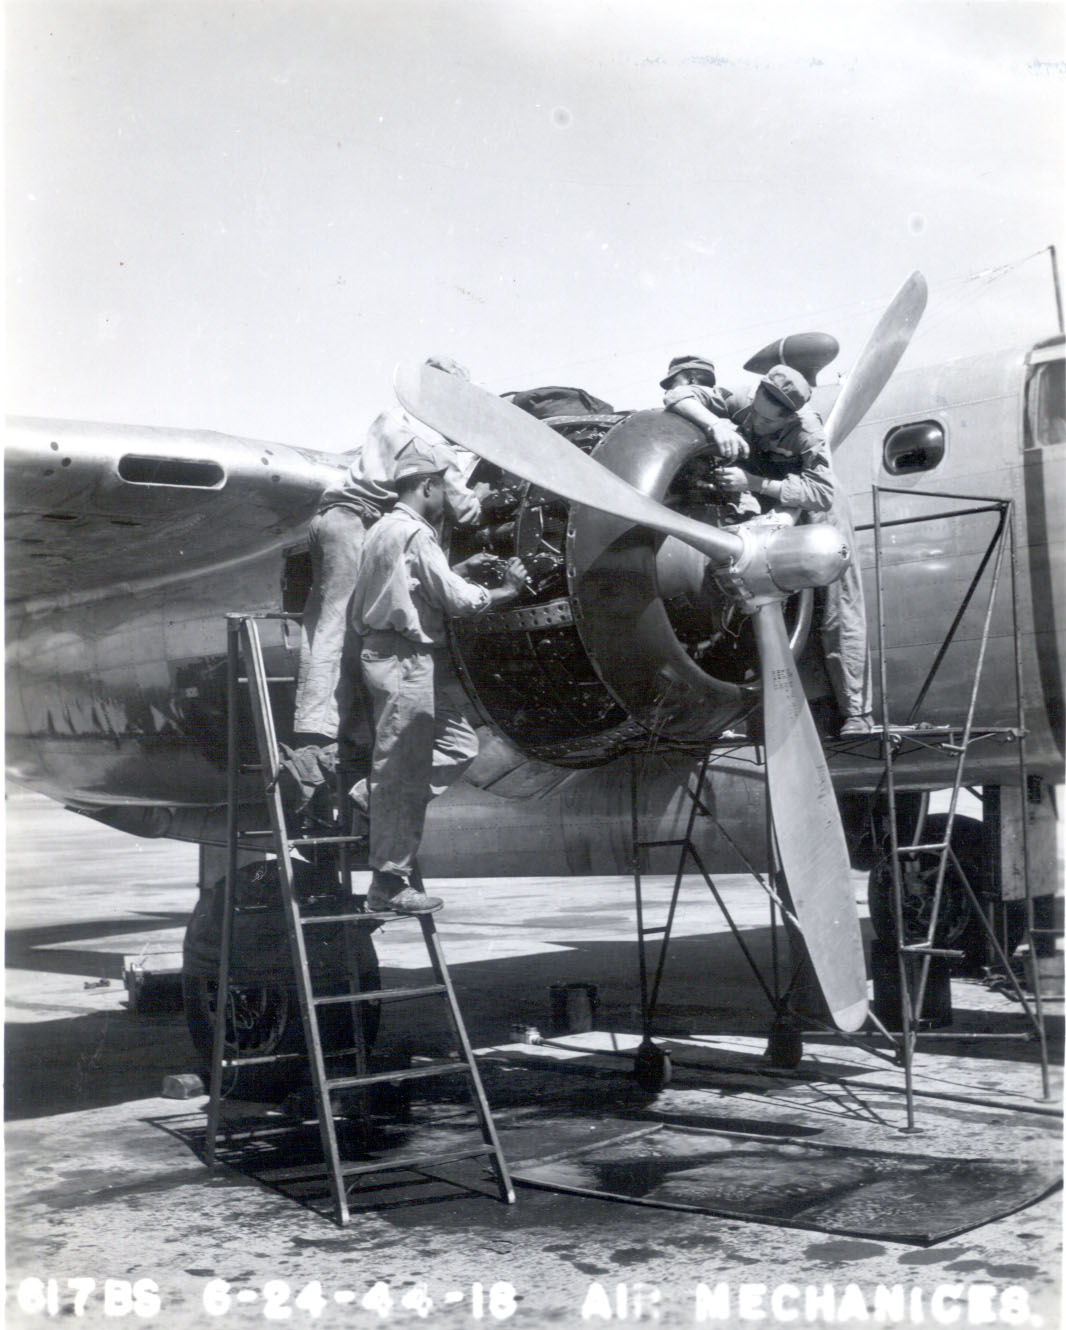 Mechanics work on aircraft